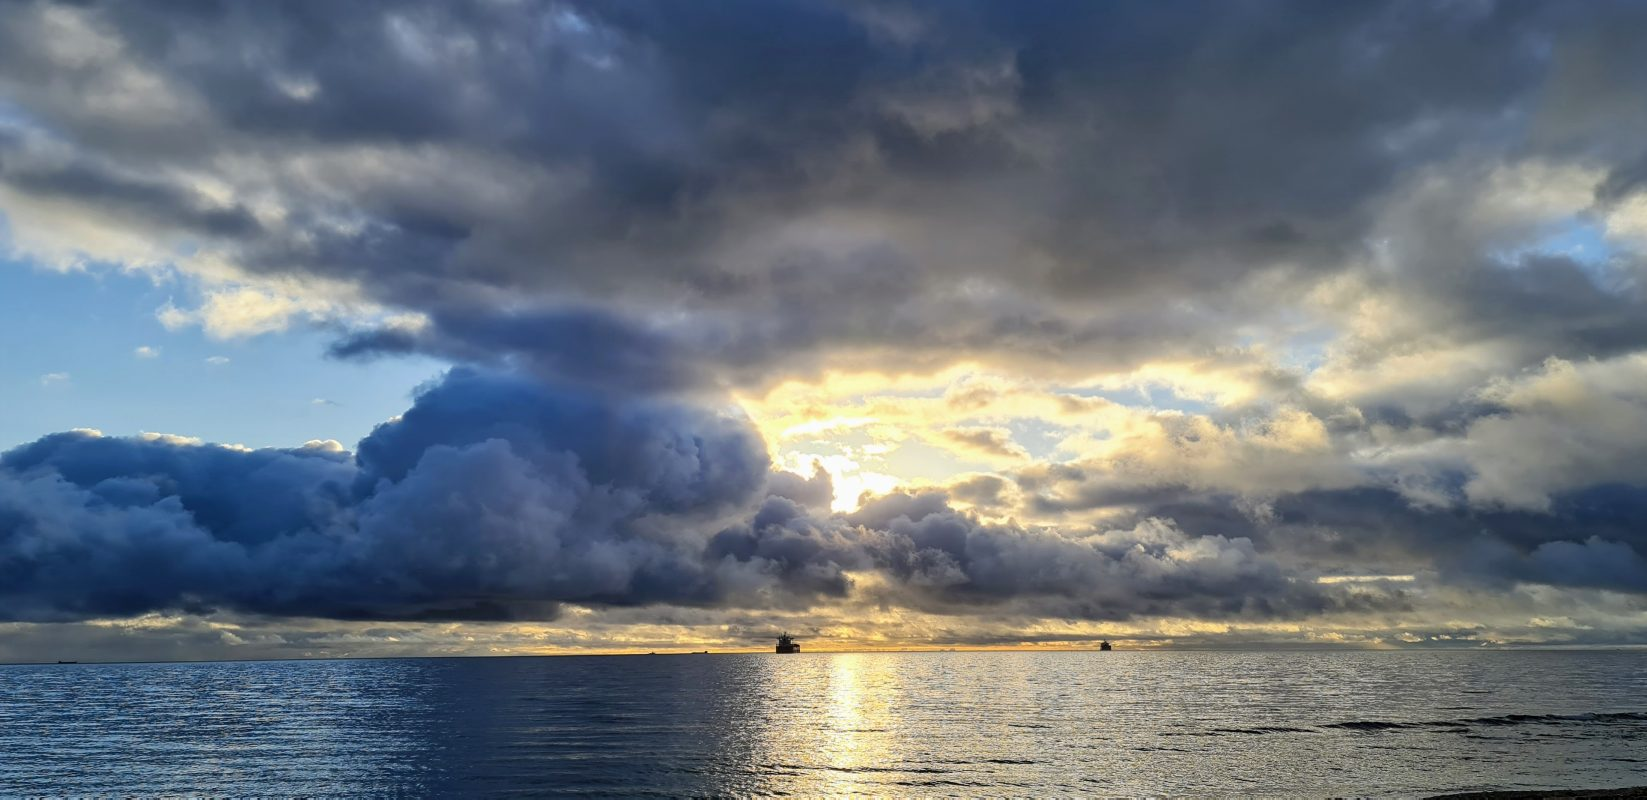 Dramatic sky at Gylly Beach this morning, by me